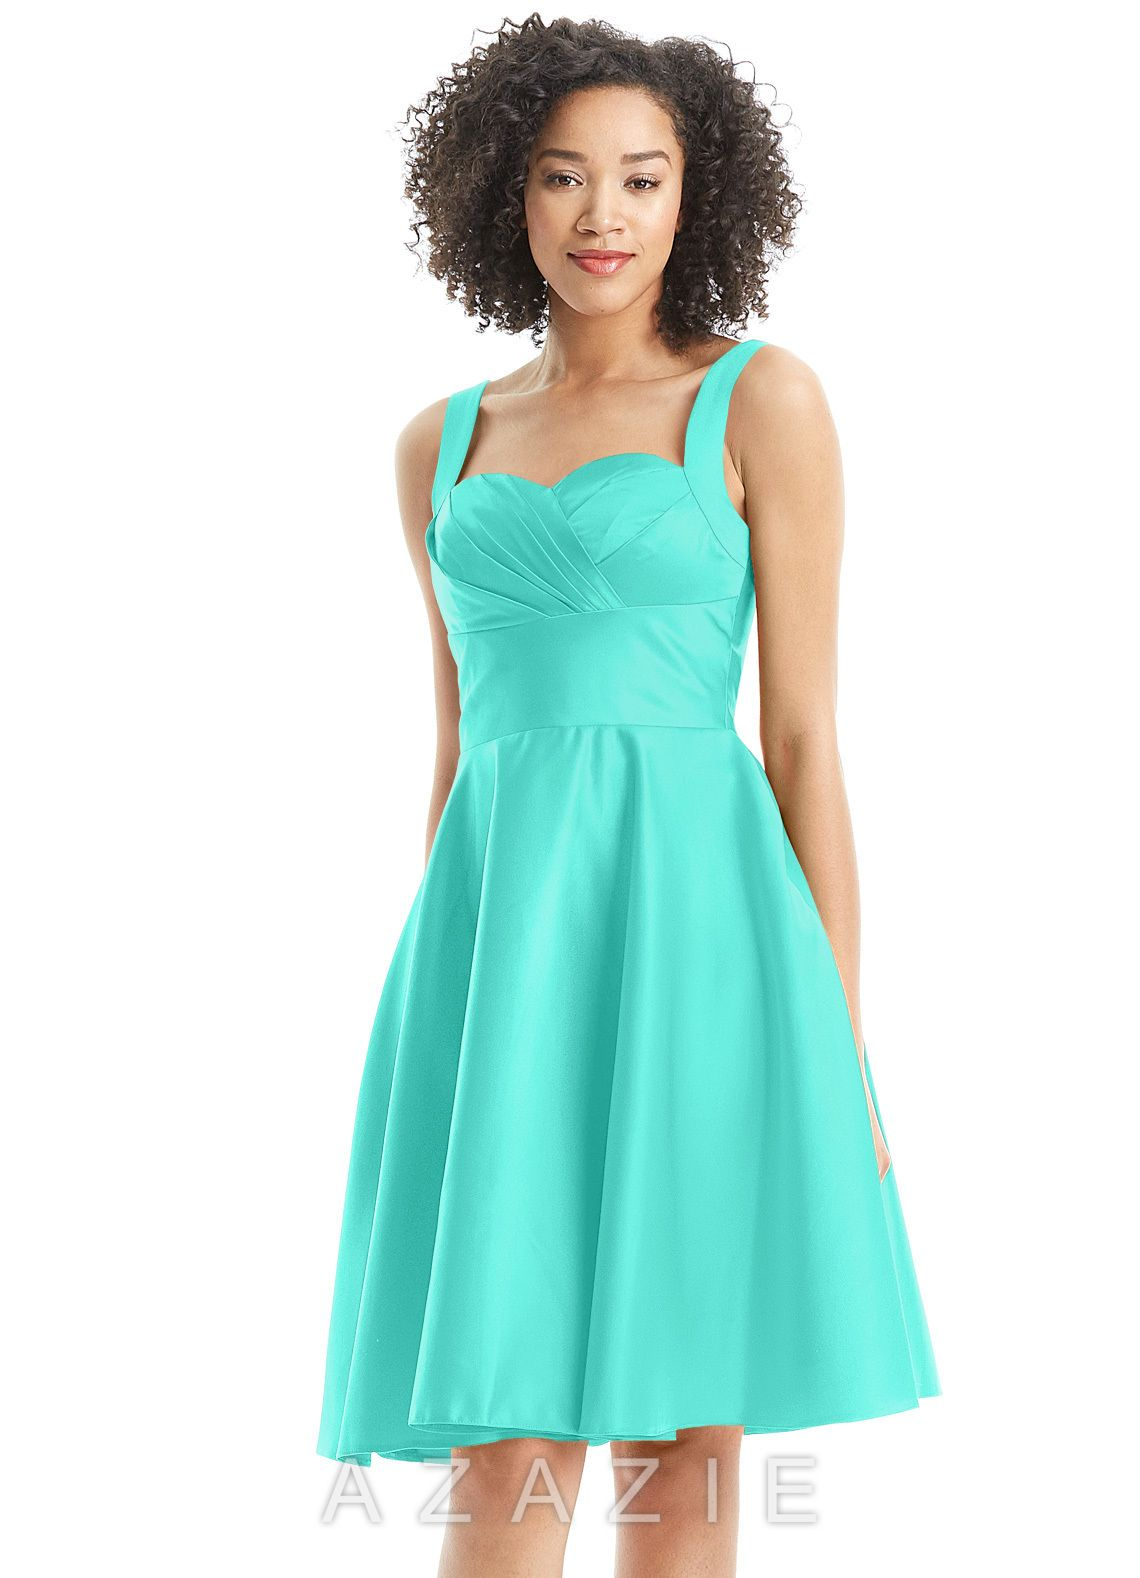 AMBER - Bridesmaid Dress   Amber, Favorite color and Dress ideas